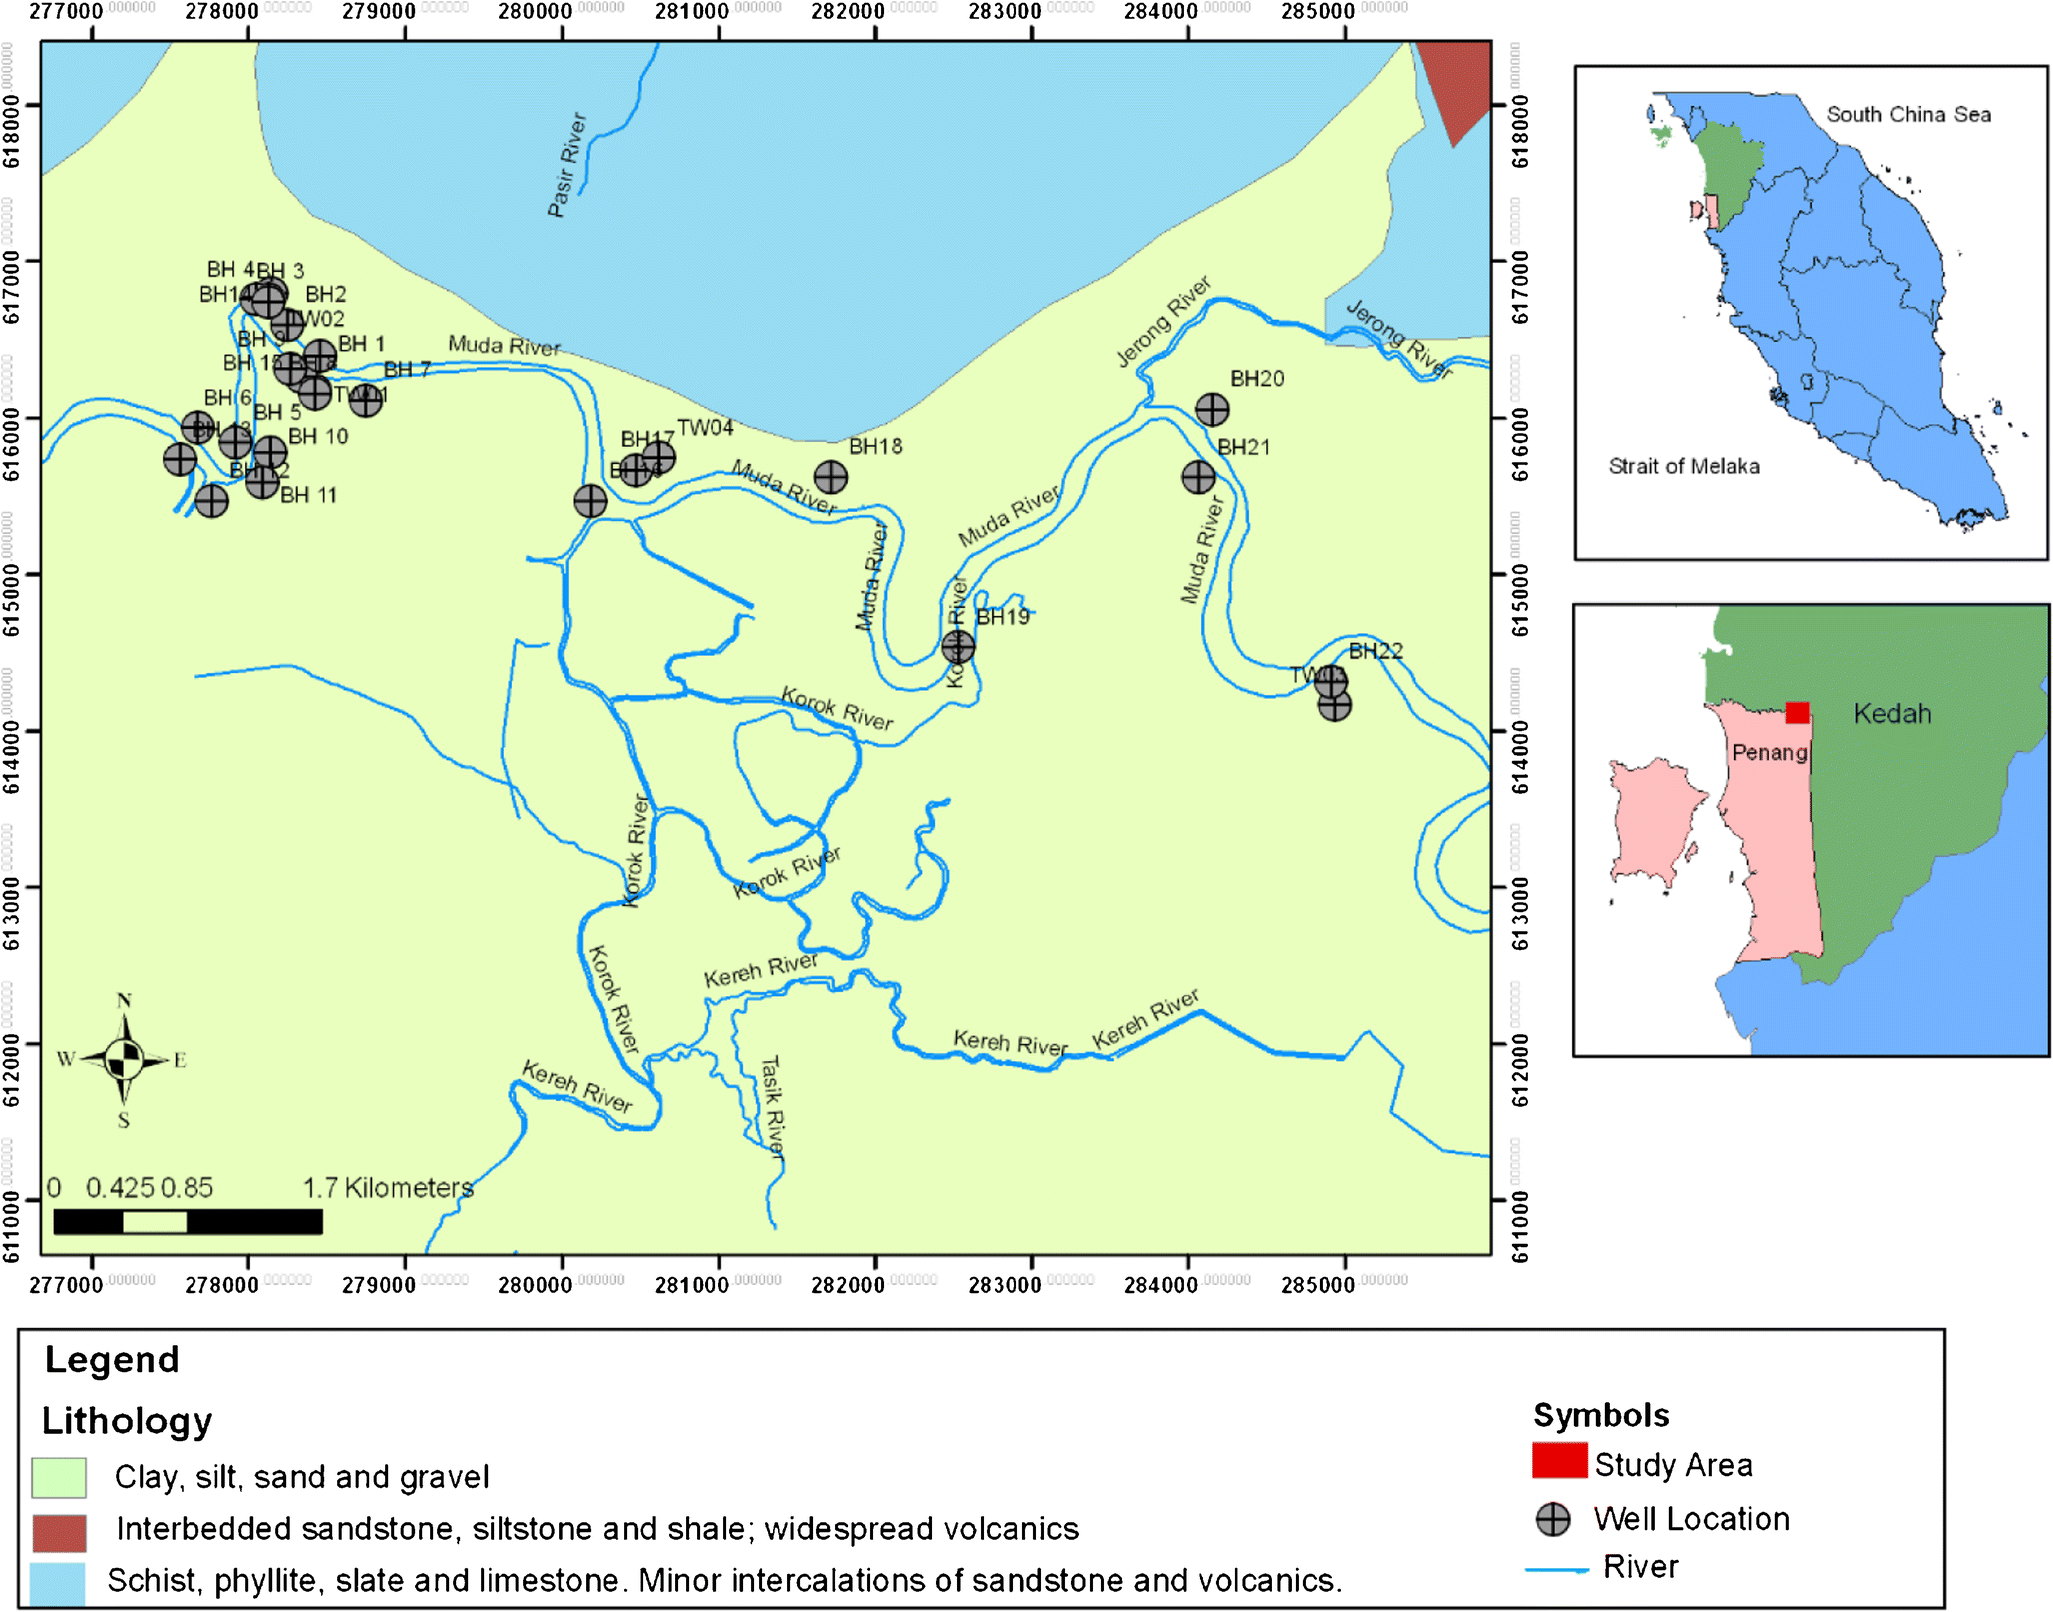 Geochemical characteristic and water quality index of groundwater